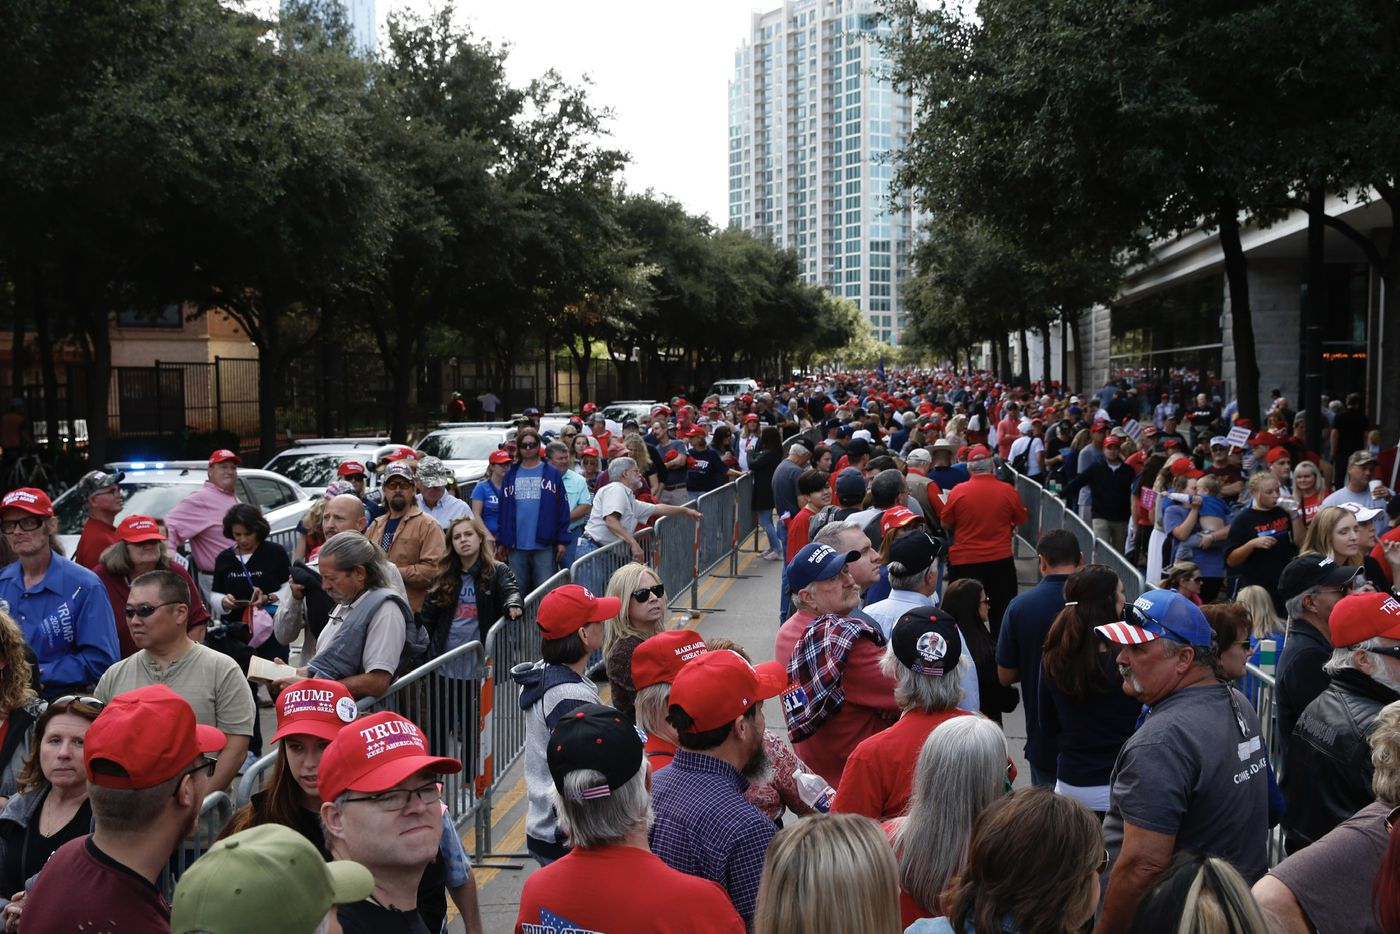 People wait in line to enter the Keep America Great Rally for President Donald Trump at the American Airlines Center in Dallas, on Thursday, October 17, 2019.